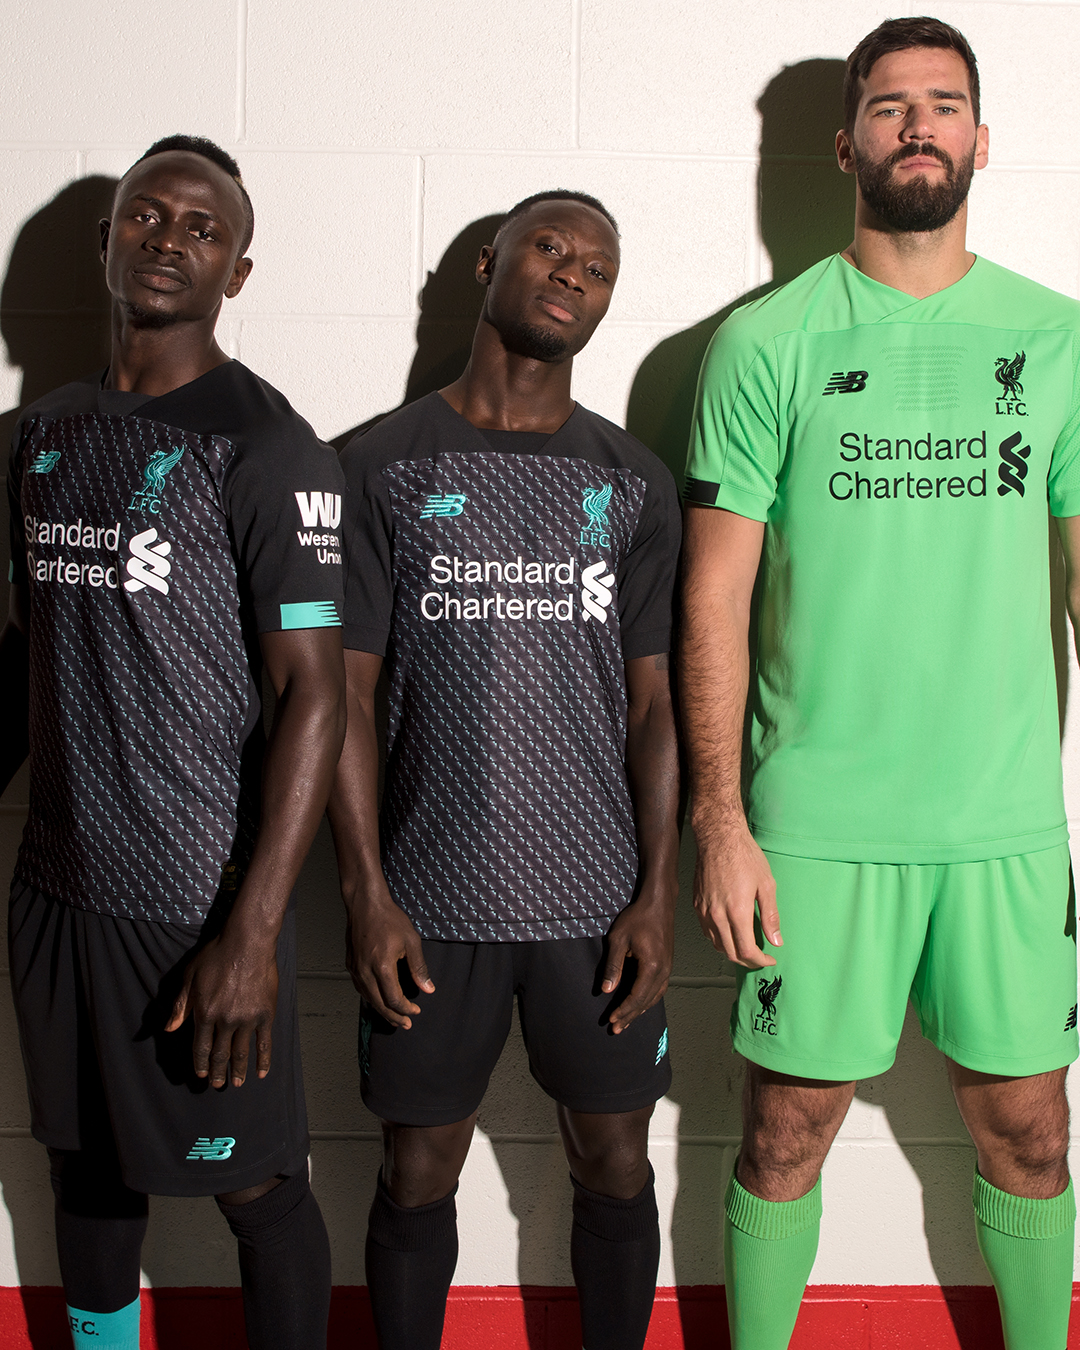 The Best Liverpool Shirt 2019/20